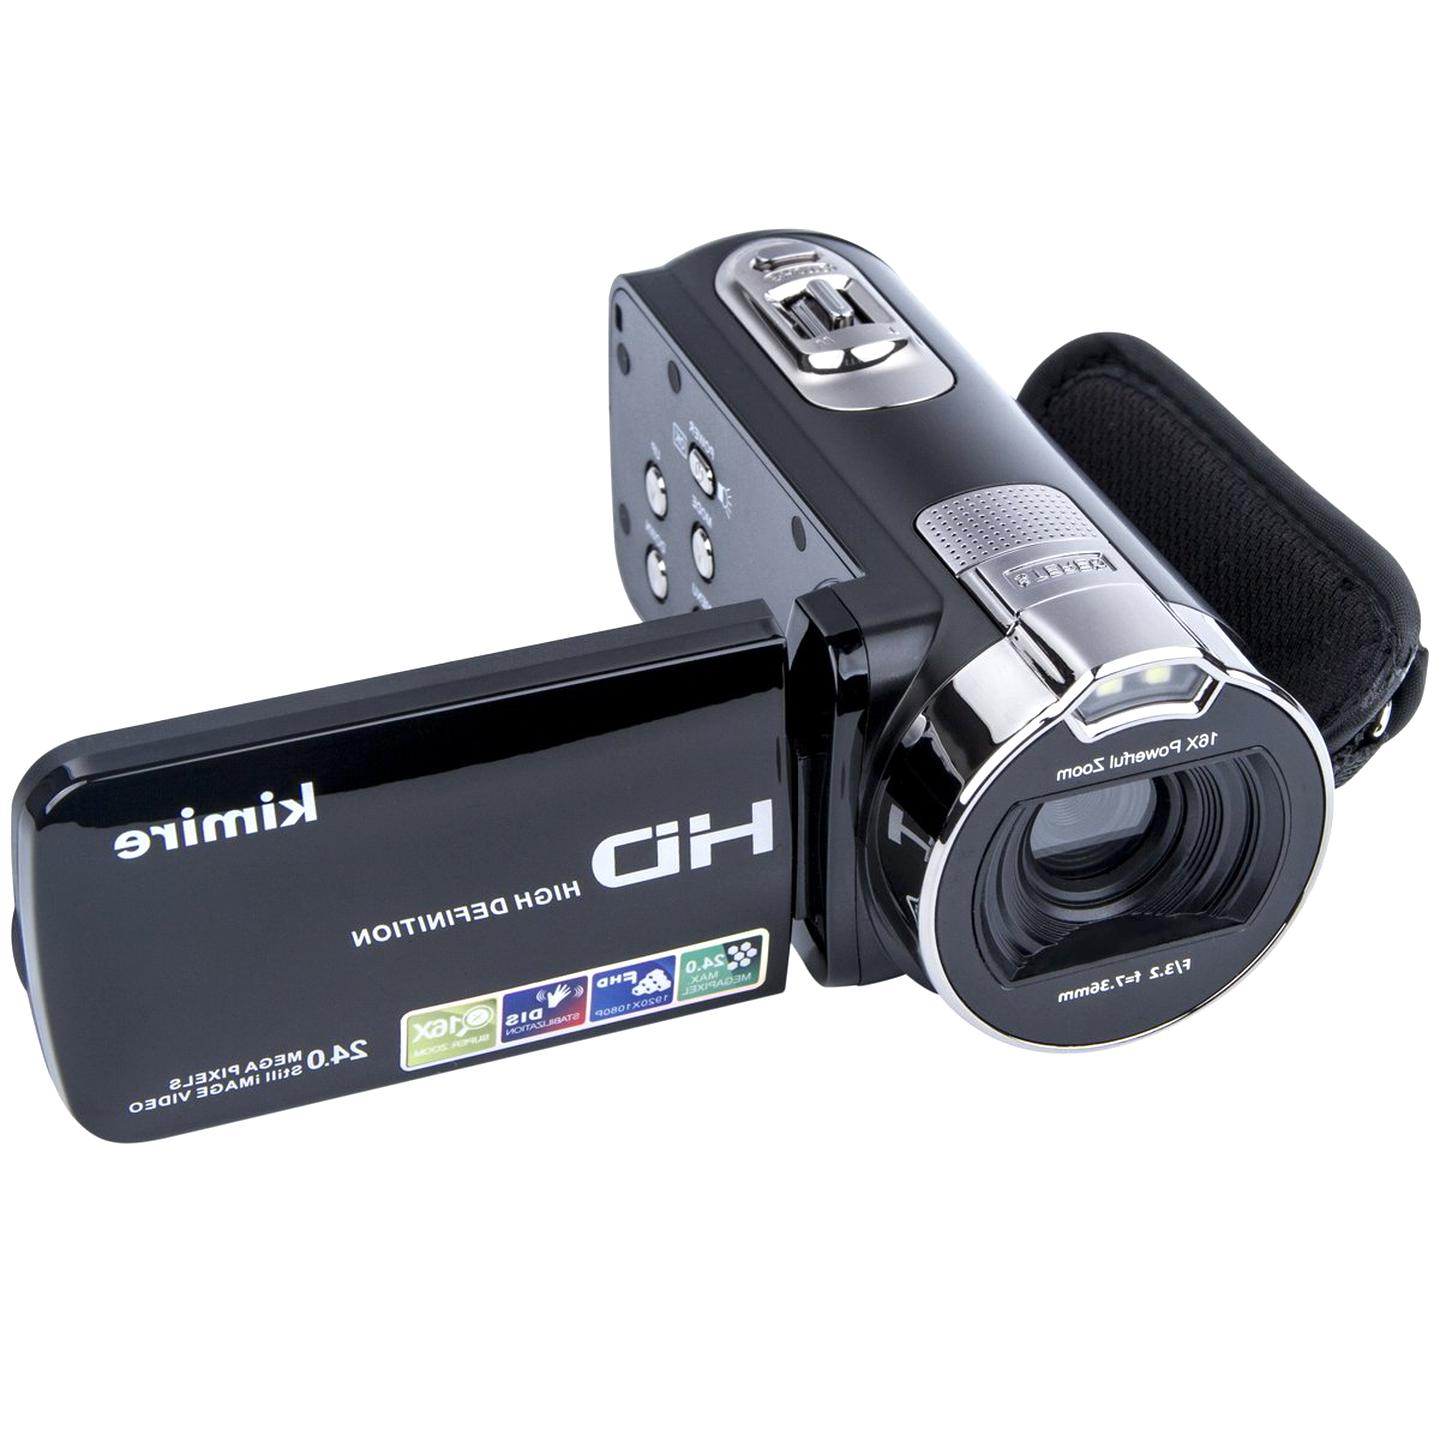 camcorders 16 for sale